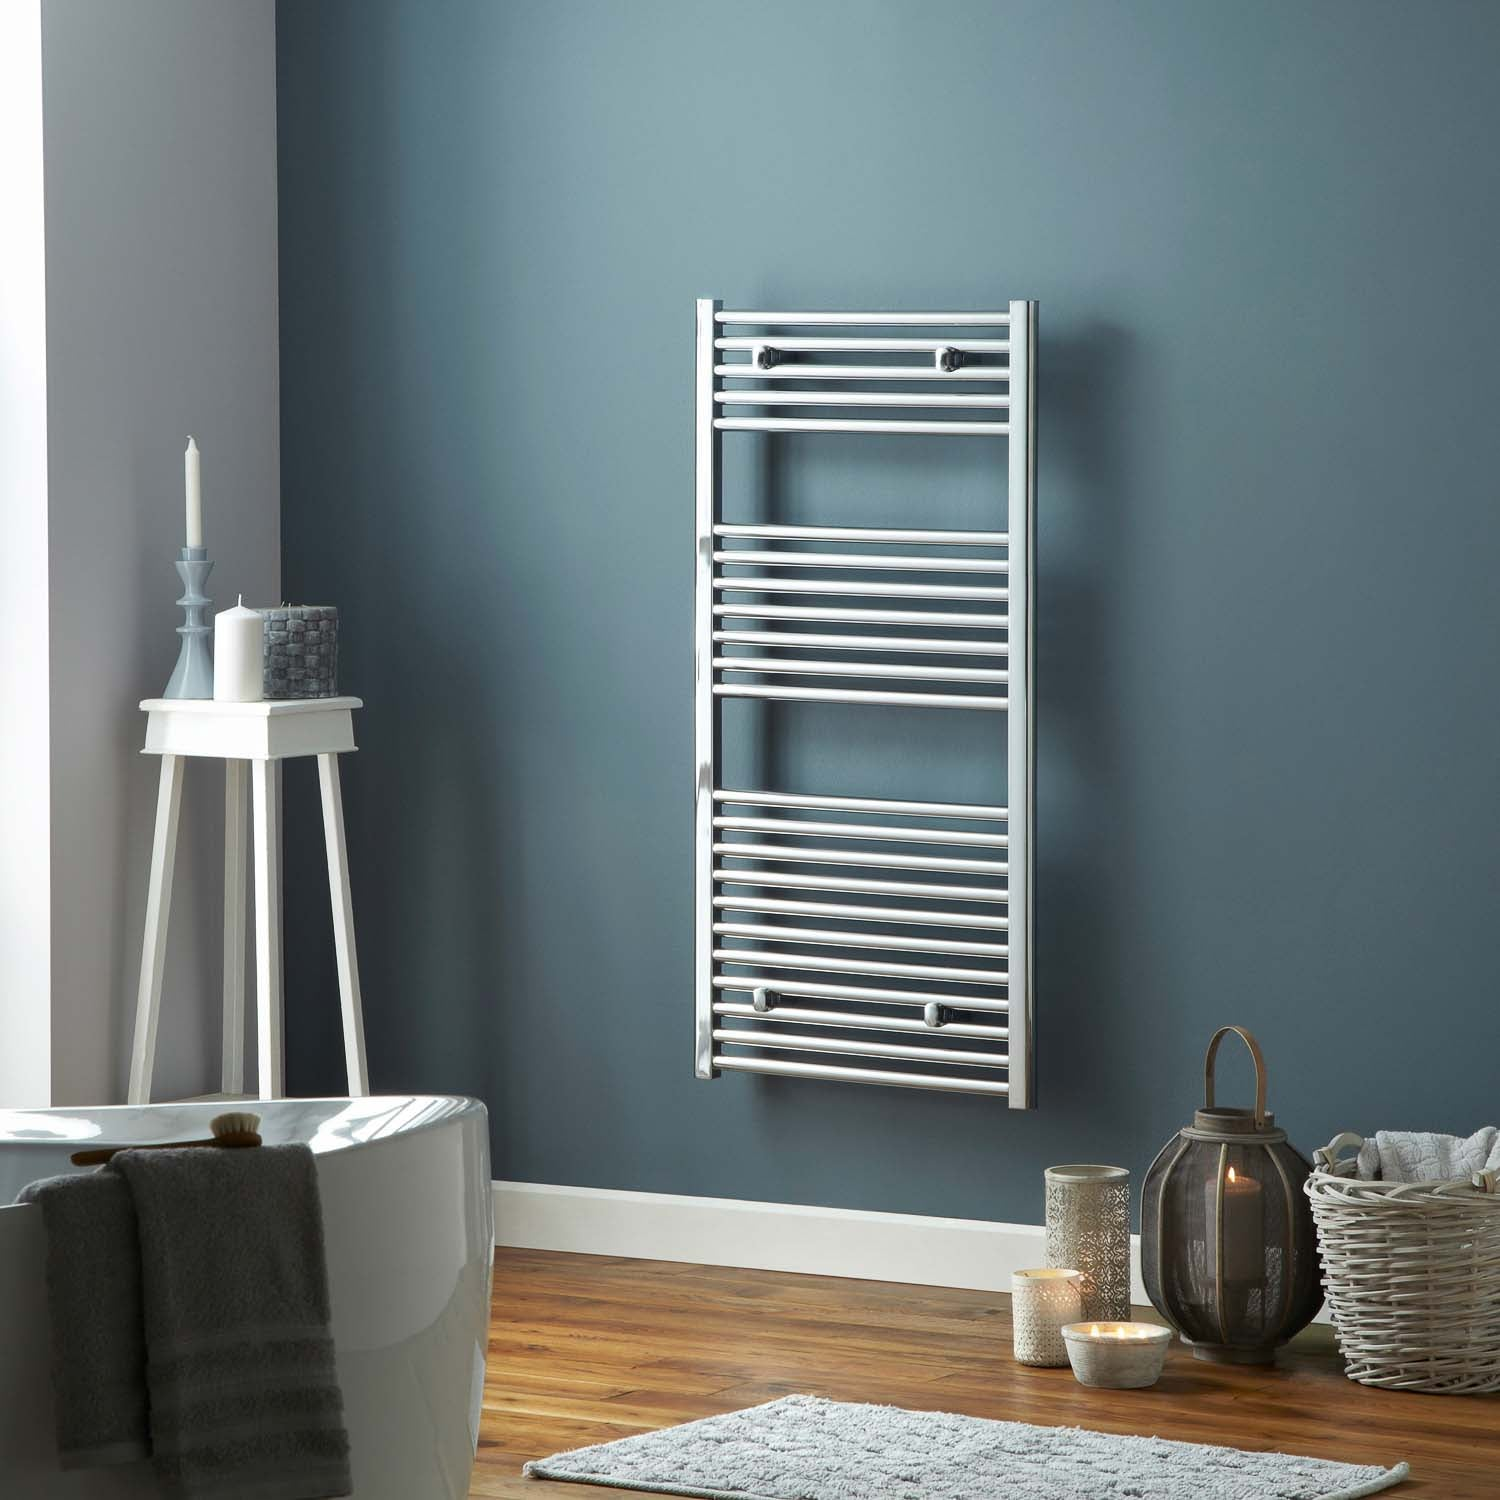 1600x500mm Modale Anti-Scald Towel Rail with a chrome finish lifestyle image